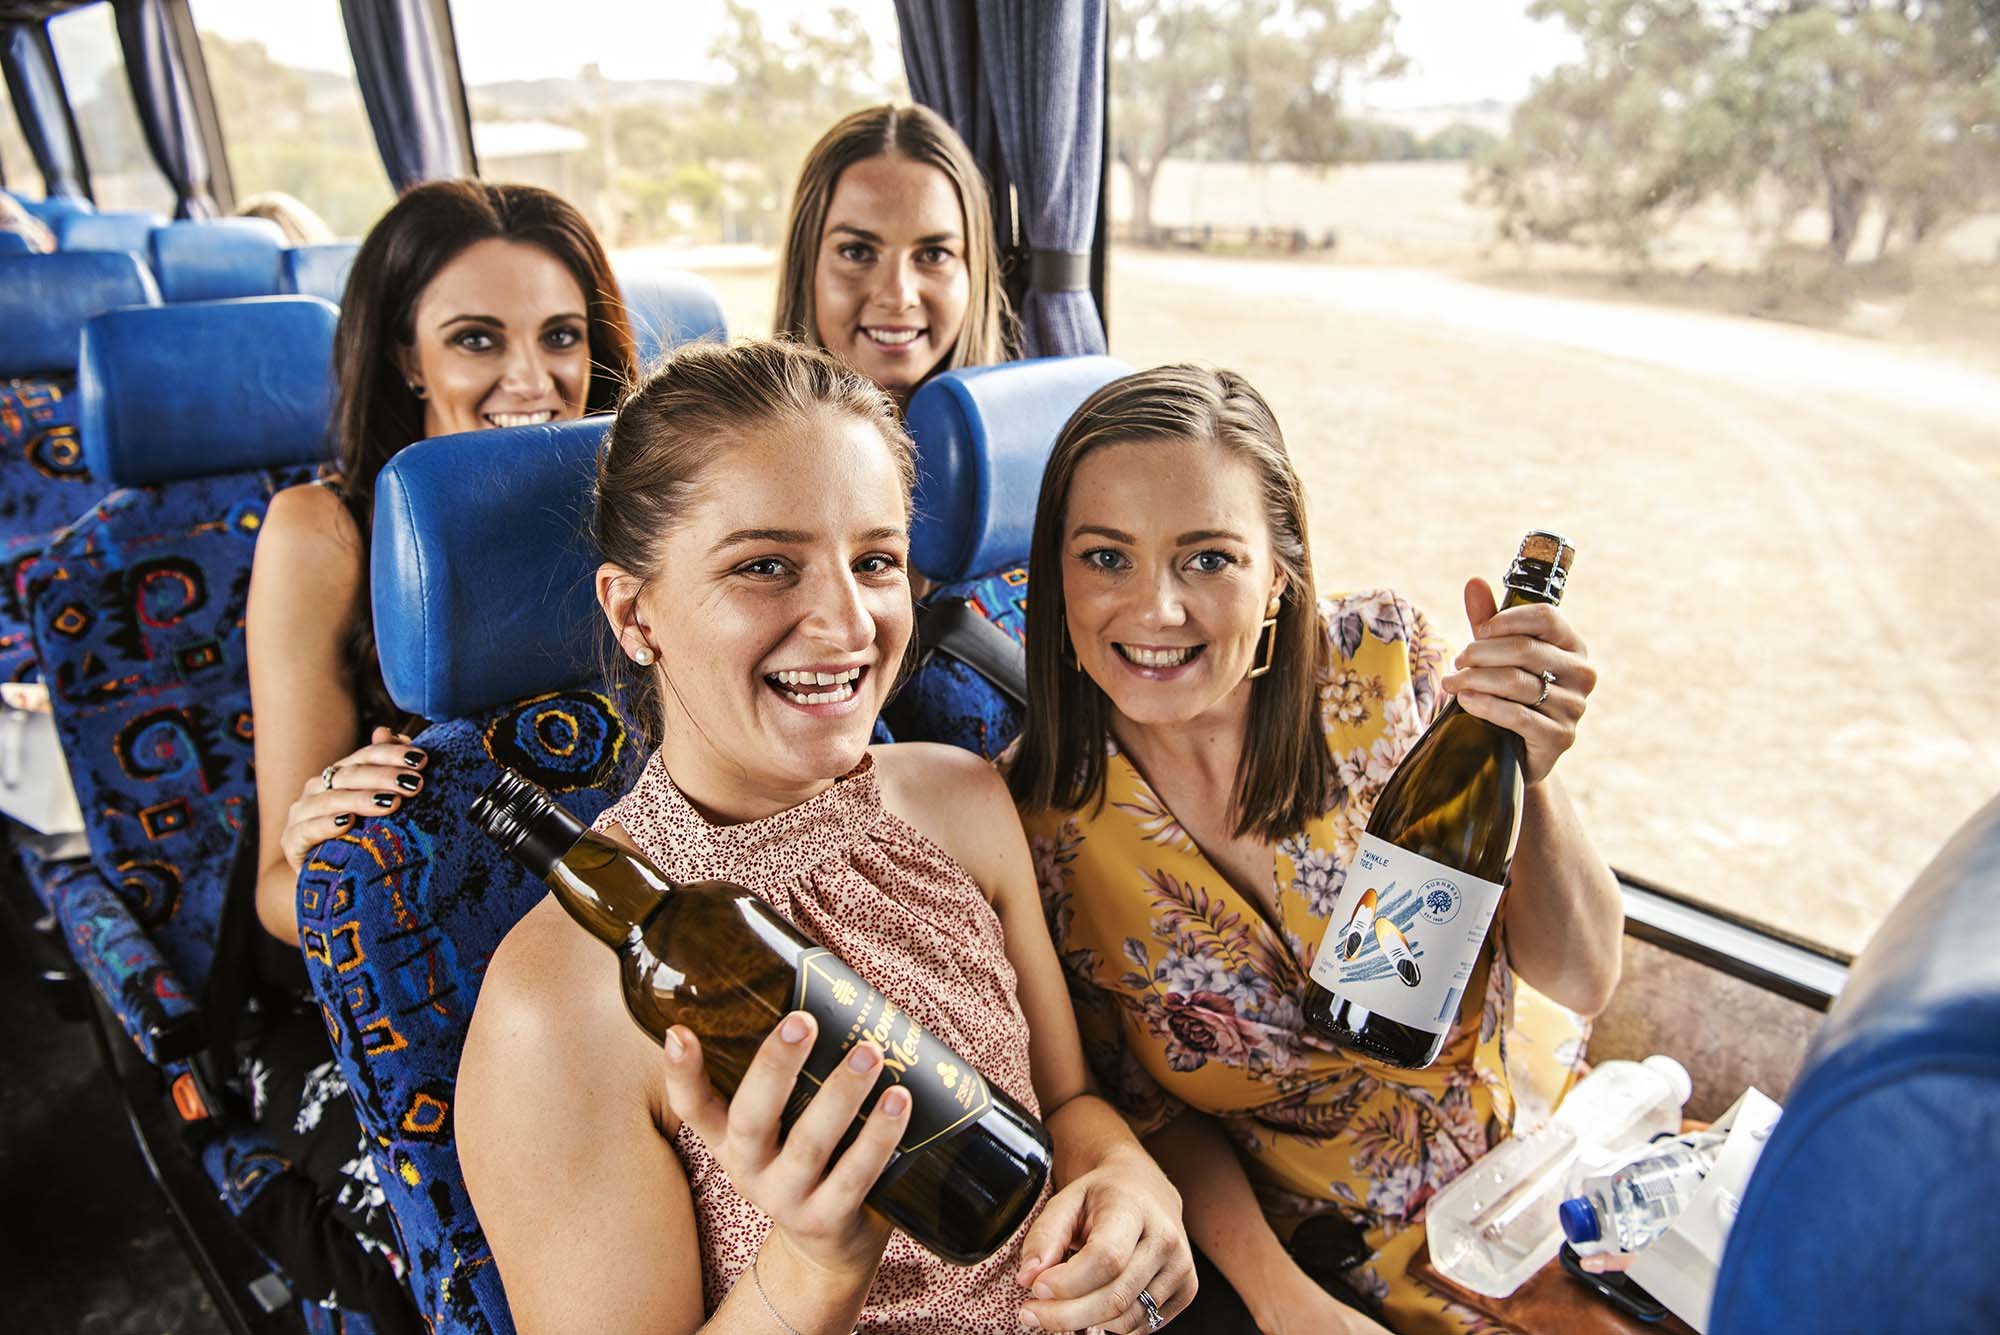 girls on wine tour bus holding wine